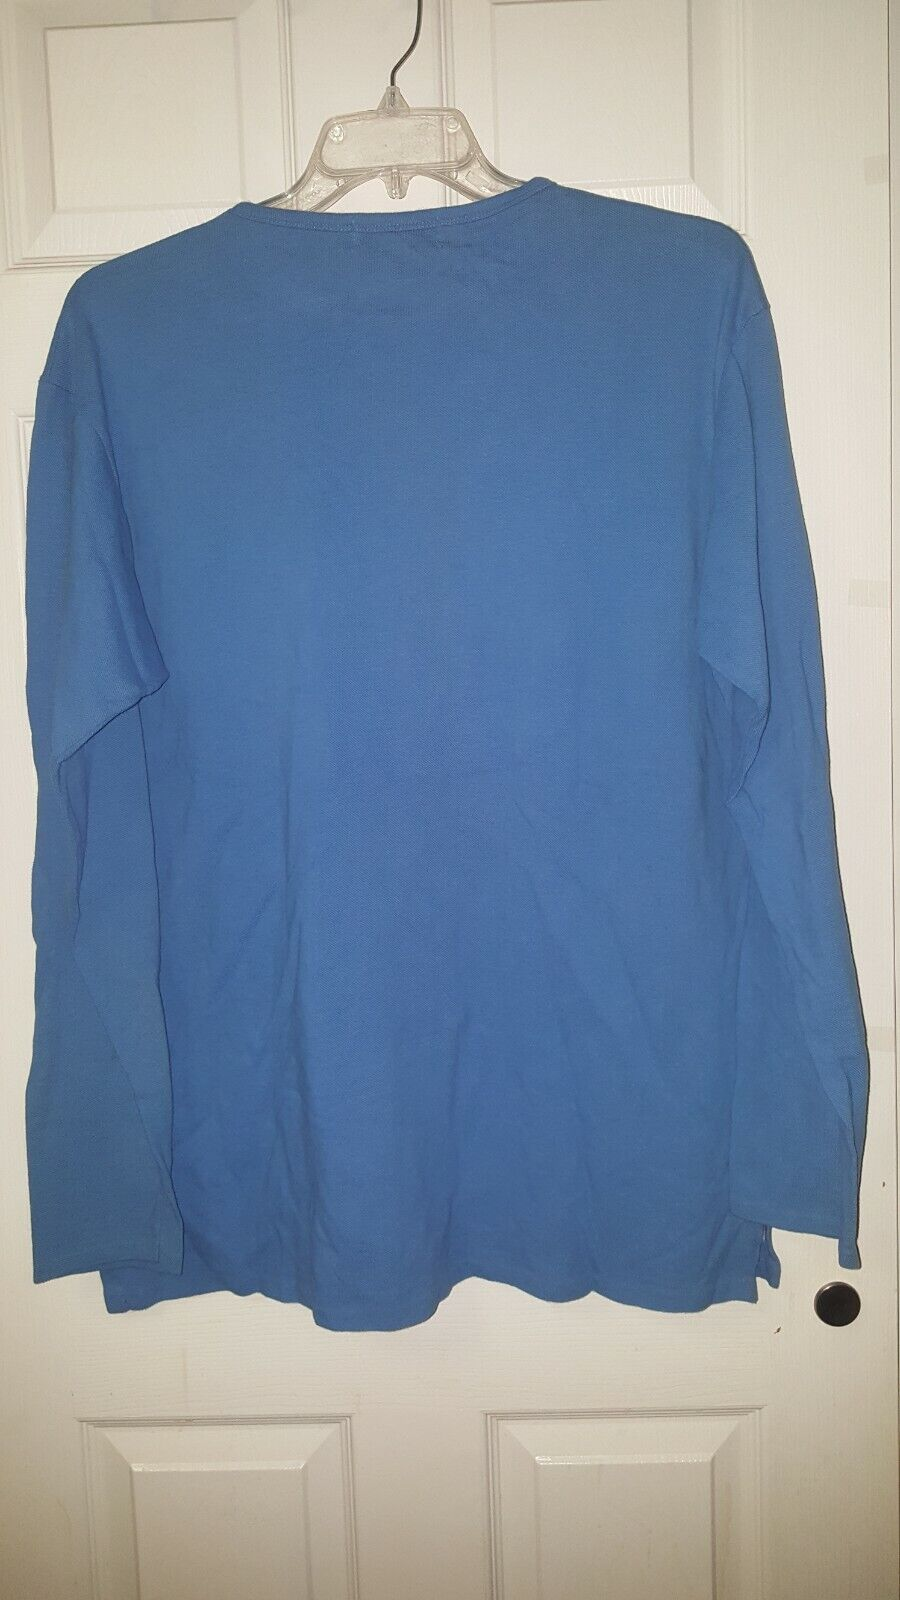 80's Vintage Polo by Ralph Lauren Knit Long Sleev… - image 4